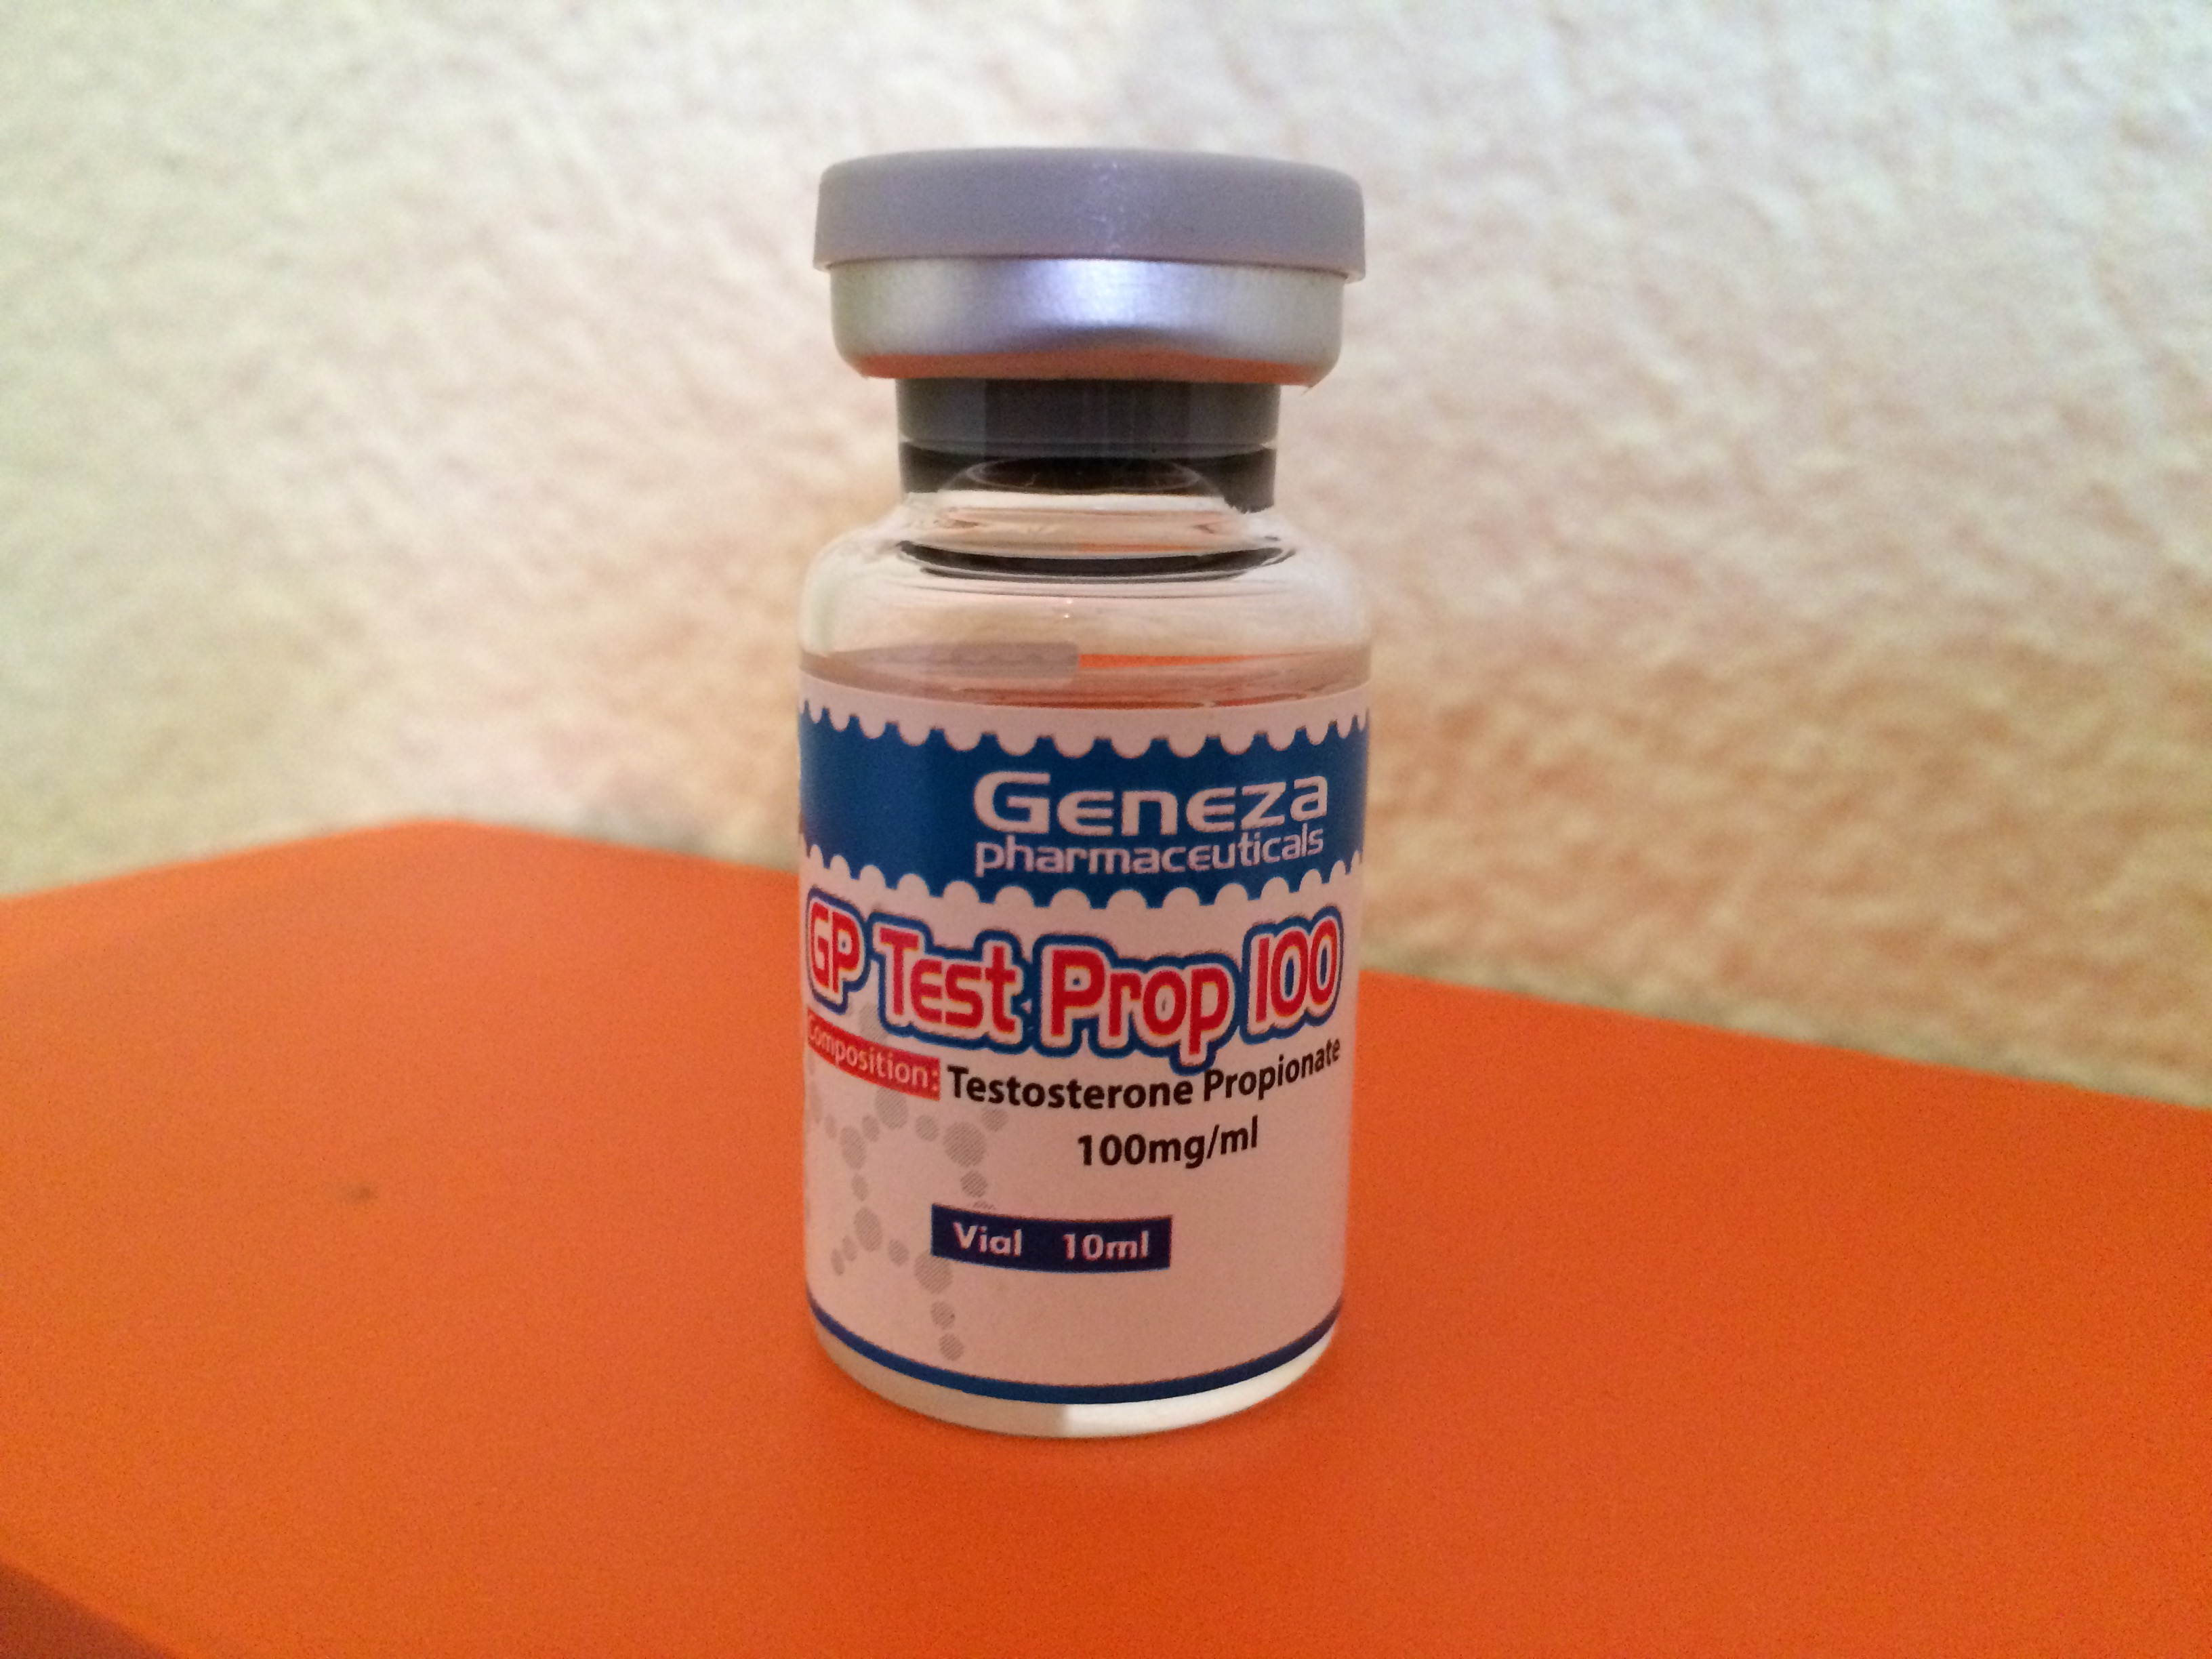 Geneza Pharmaceuticals Gp Test Prop 100 Lab Test Results